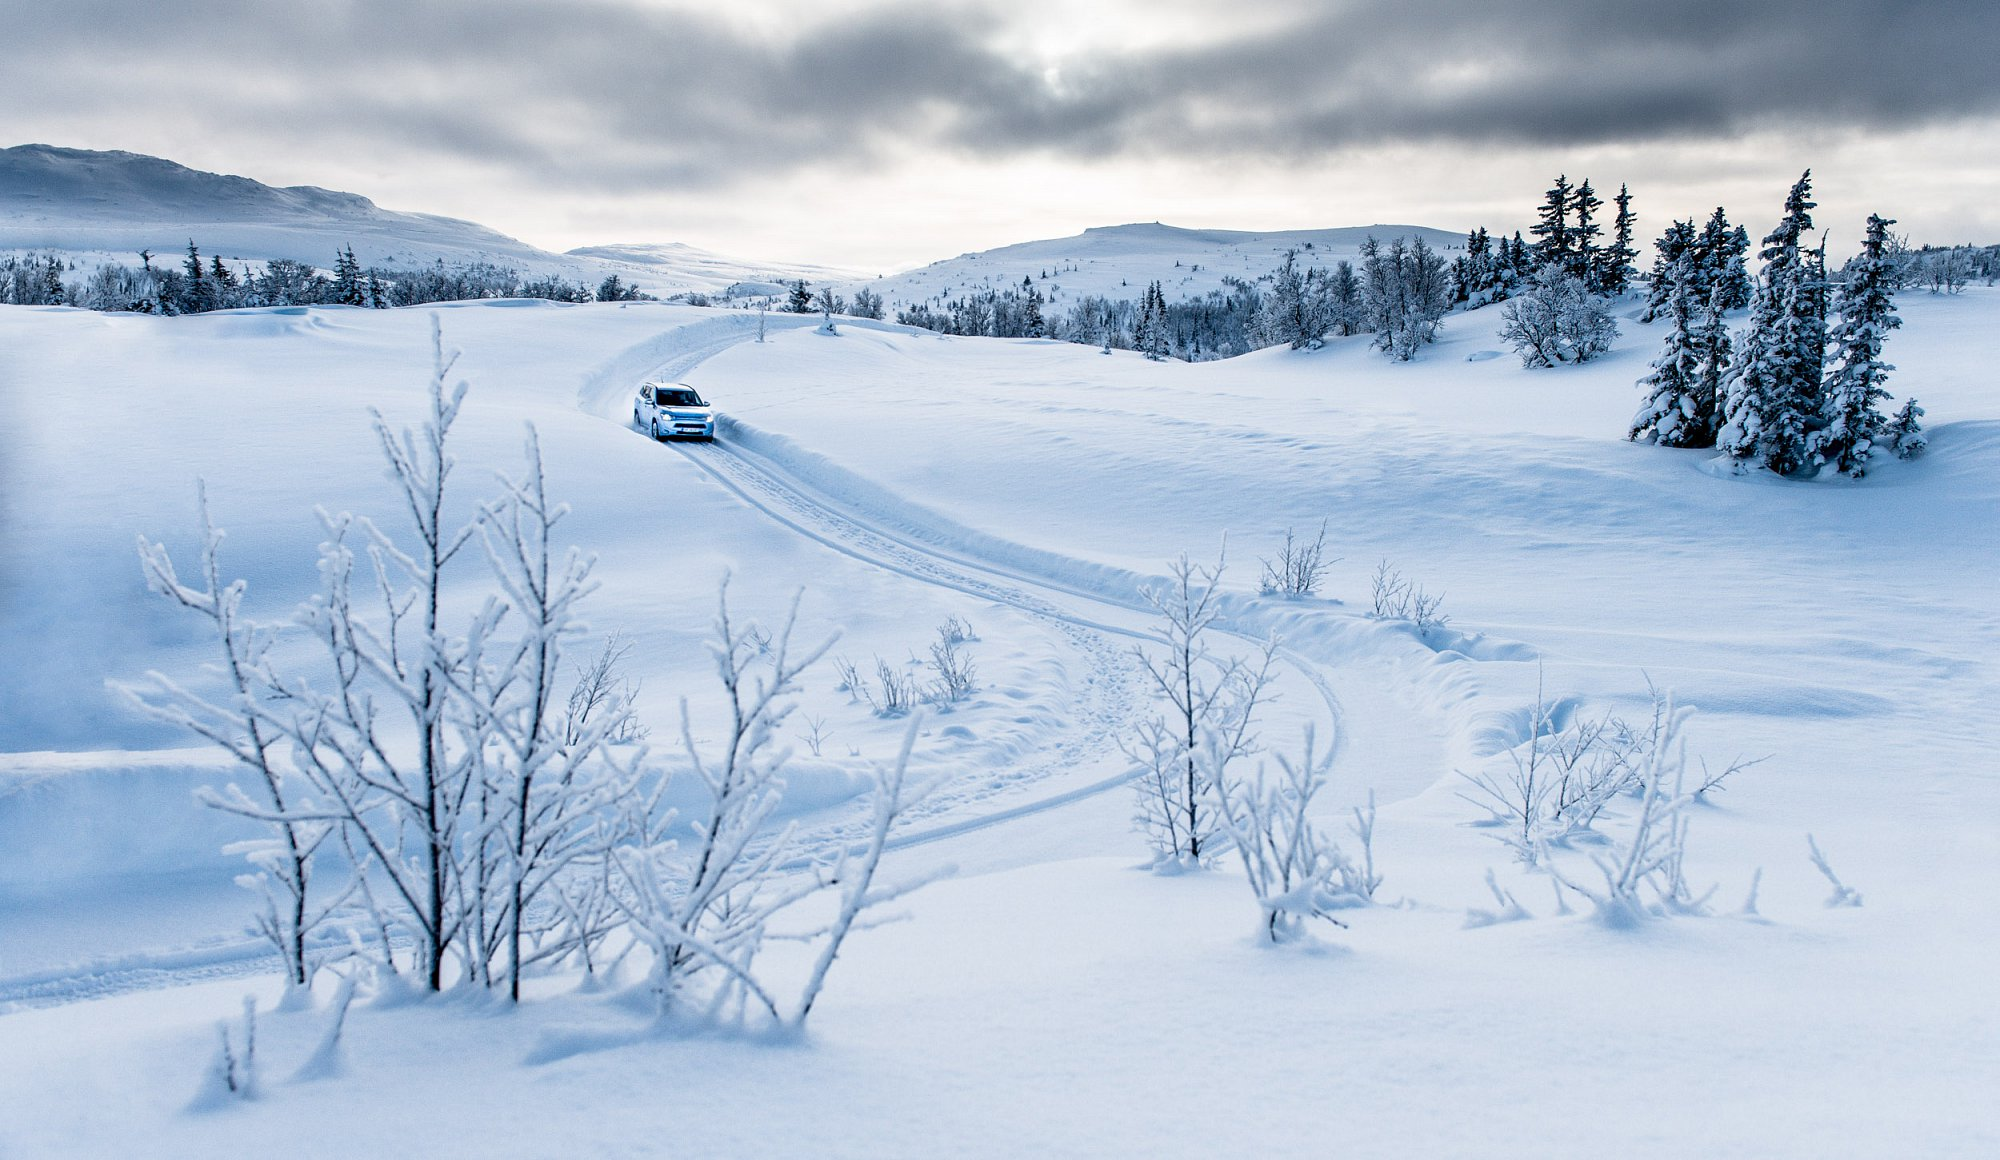 Winter at Norefjell Norway with Outlander PHEV. Client Mitsubishi.